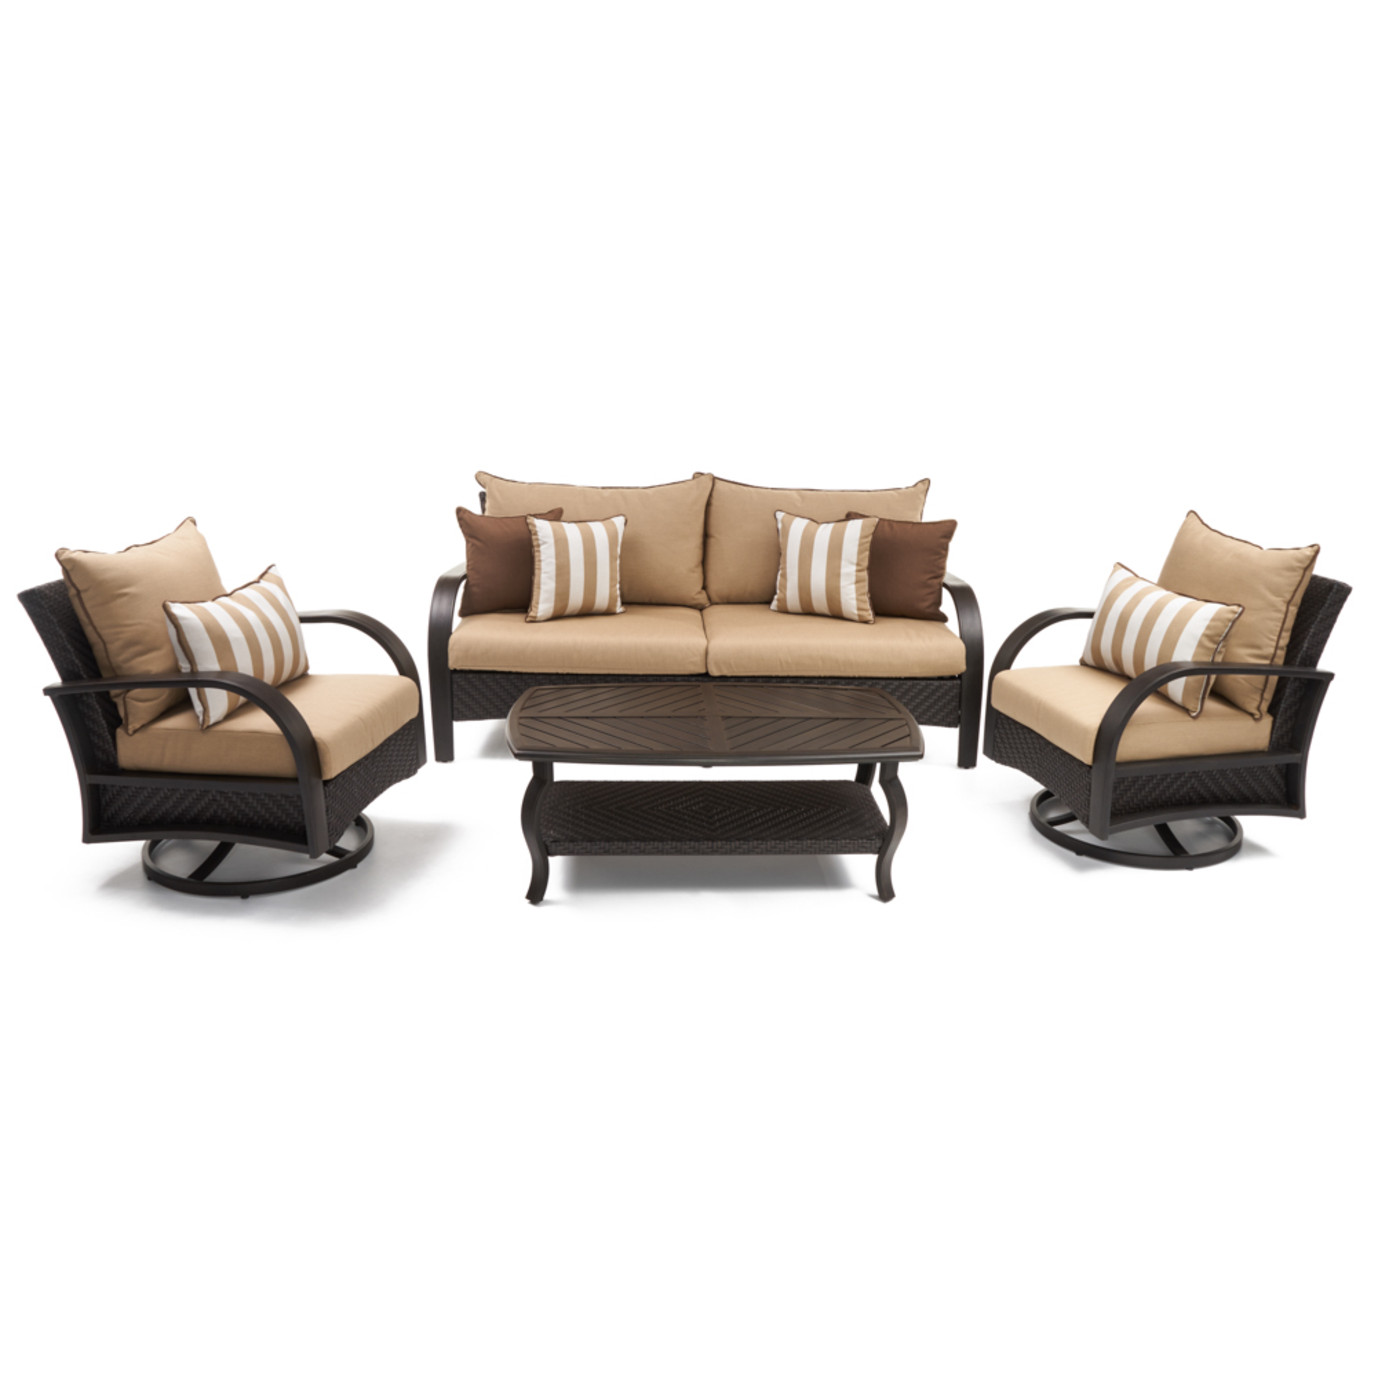 Barcelo™ 4pc Motion Club & Sofa Set - Maxim Beige